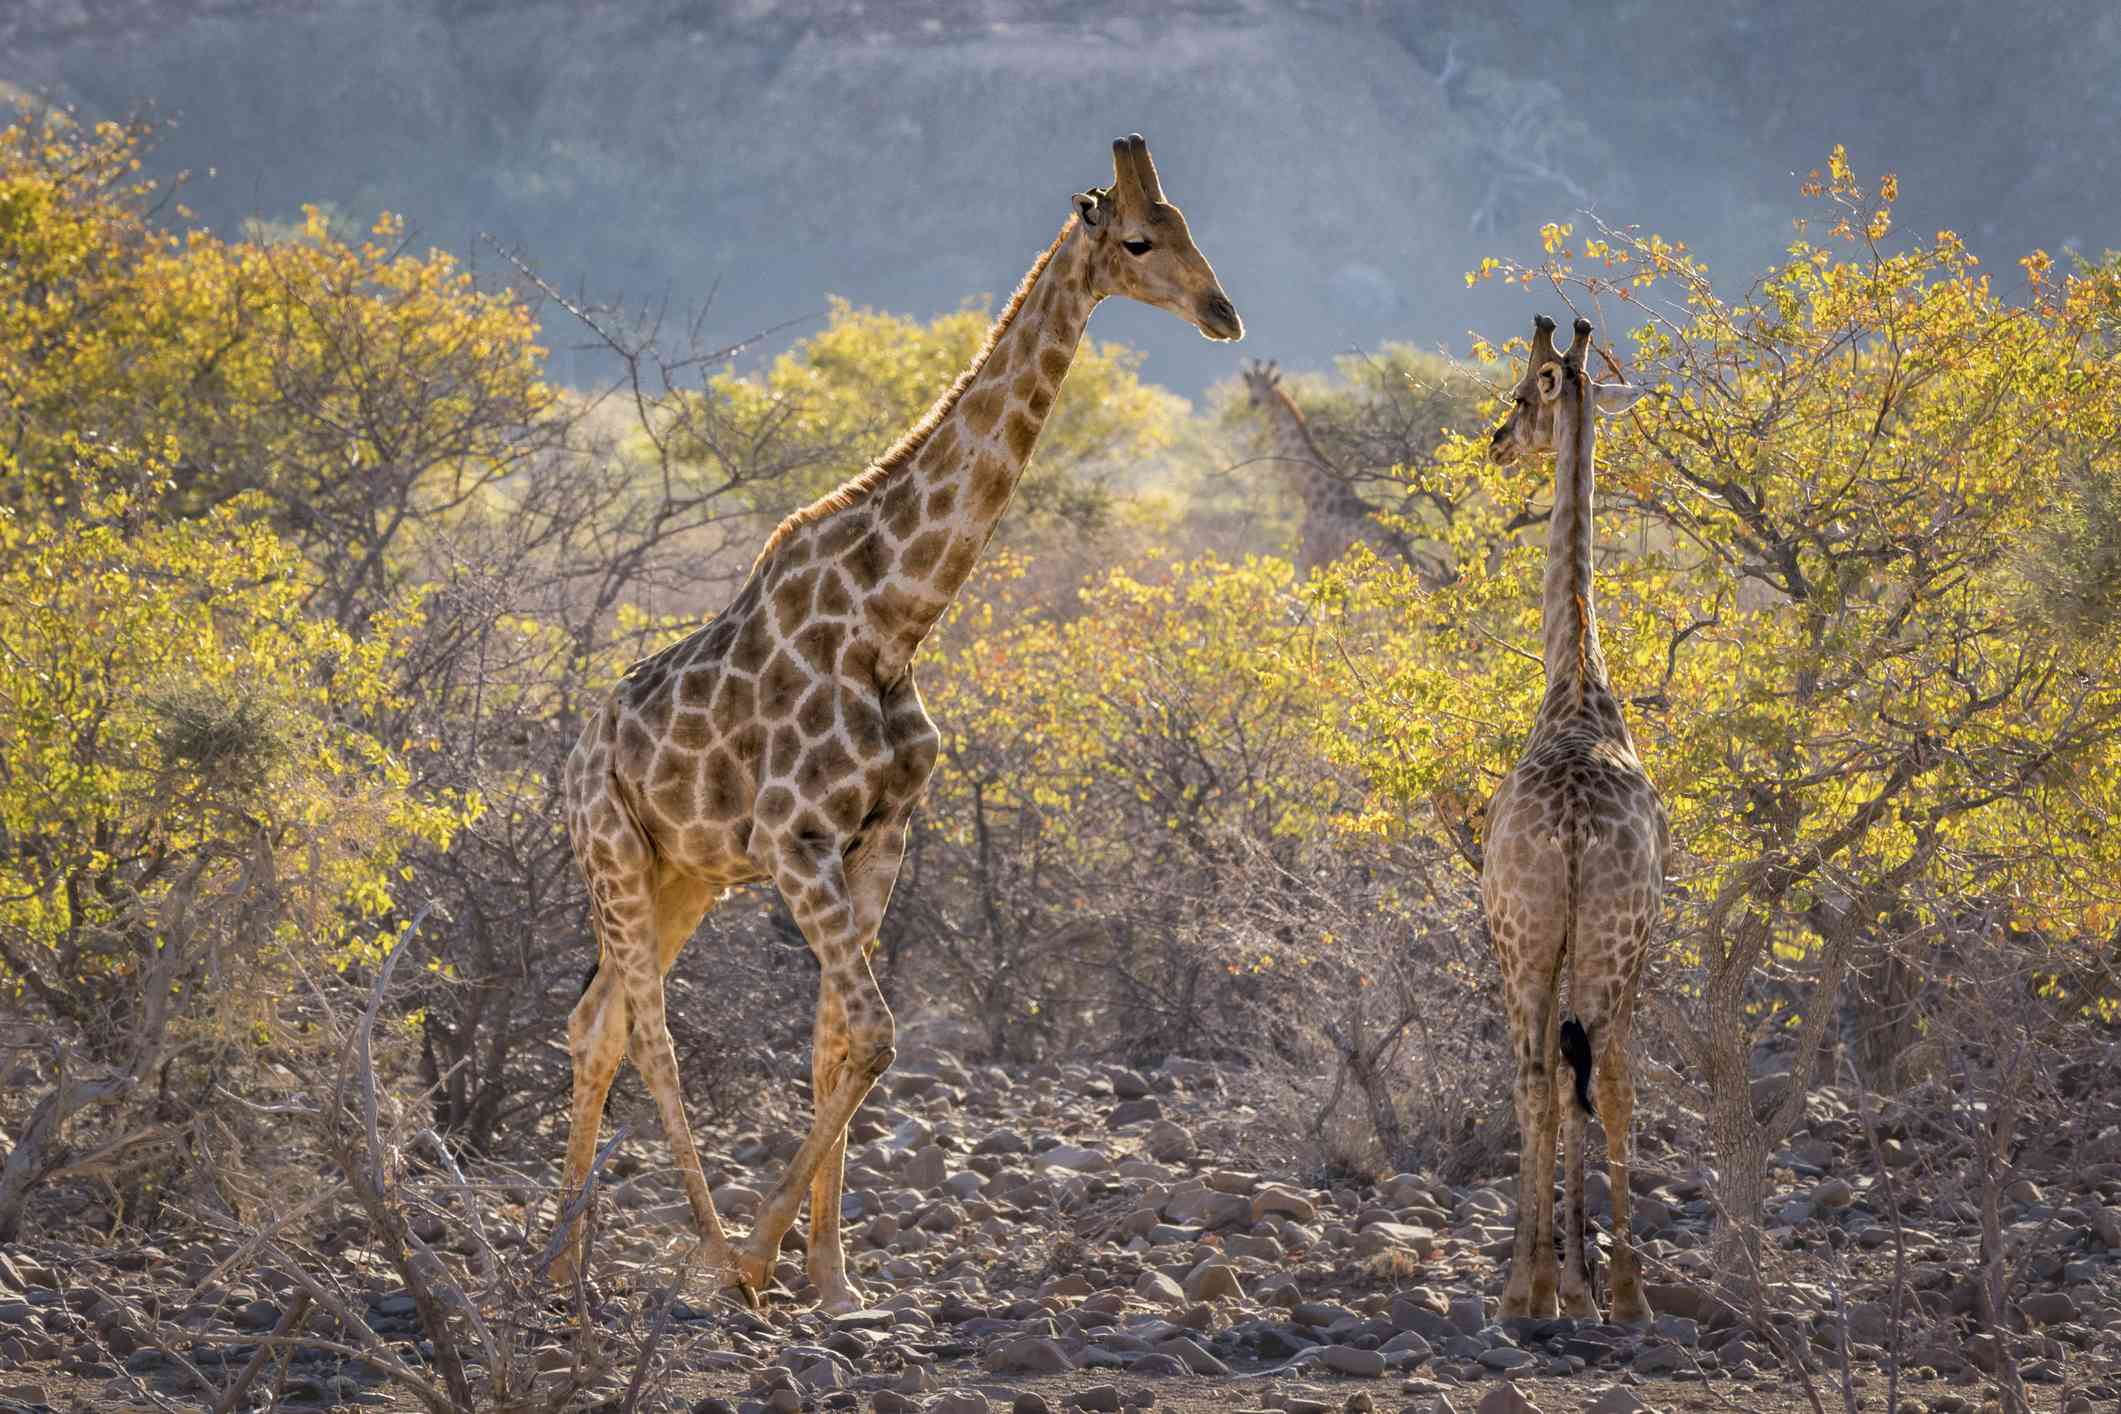 Endangered Nubian giraffes surrounded by acacia trees